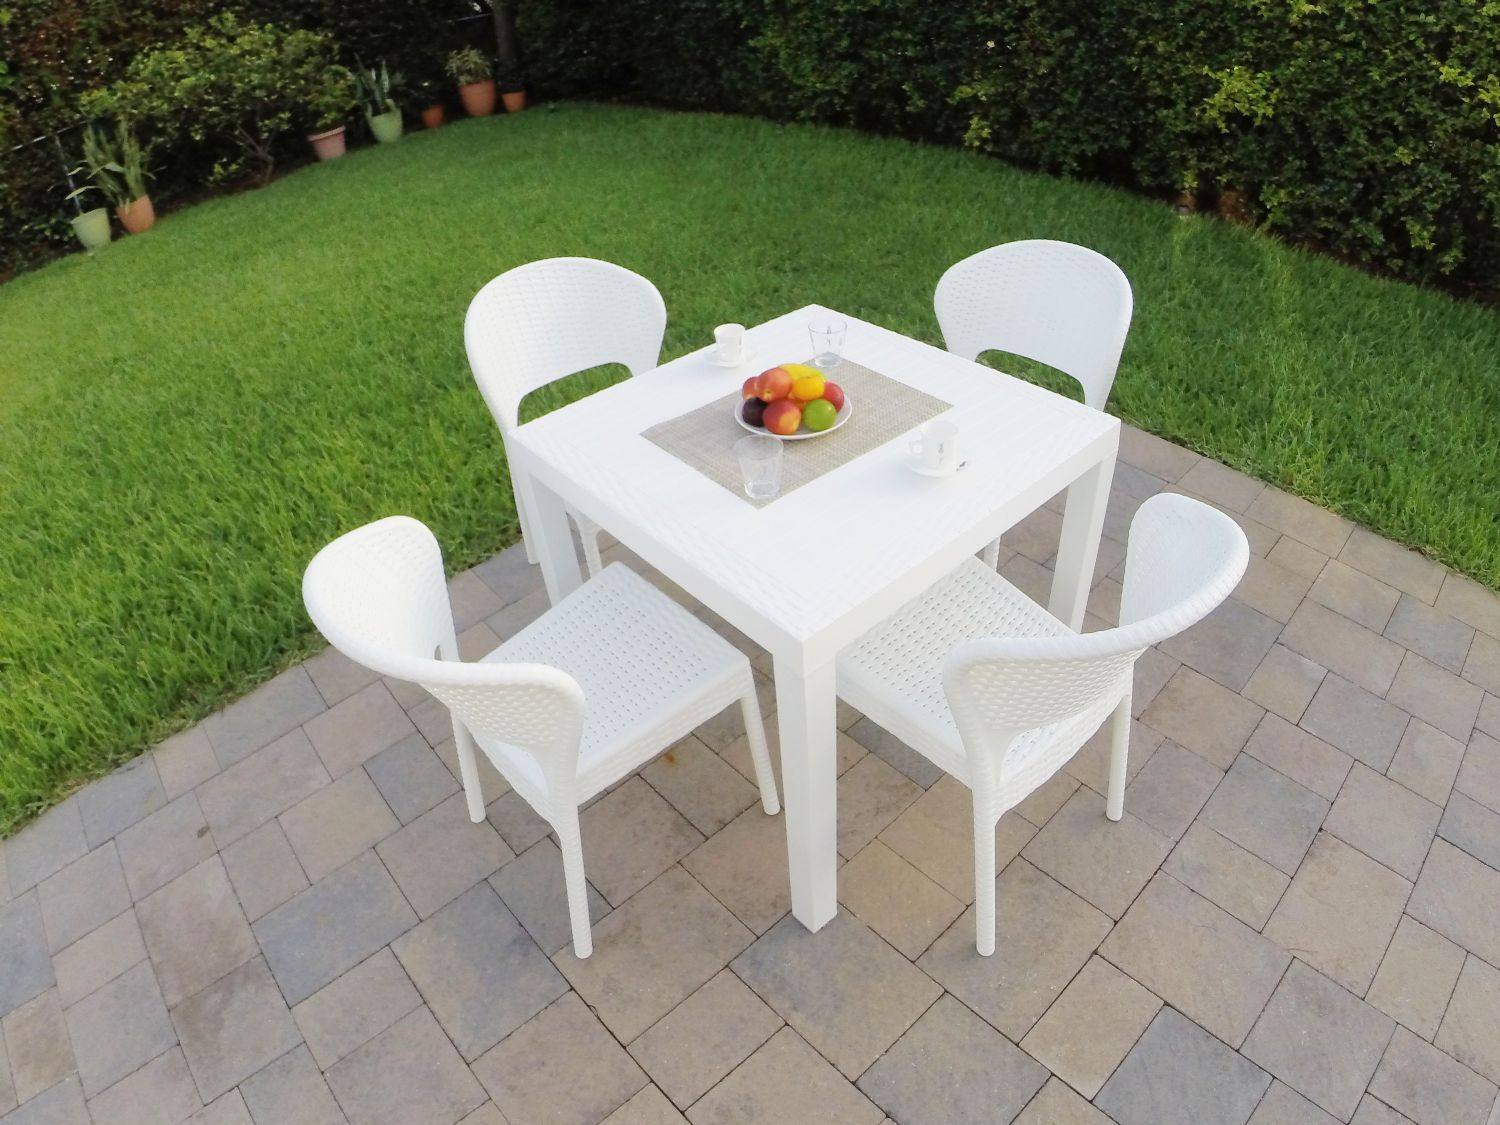 Daytona Wickerlook Square Patio Dining Set 5 Piece Brown ISP8181S-BR - 4